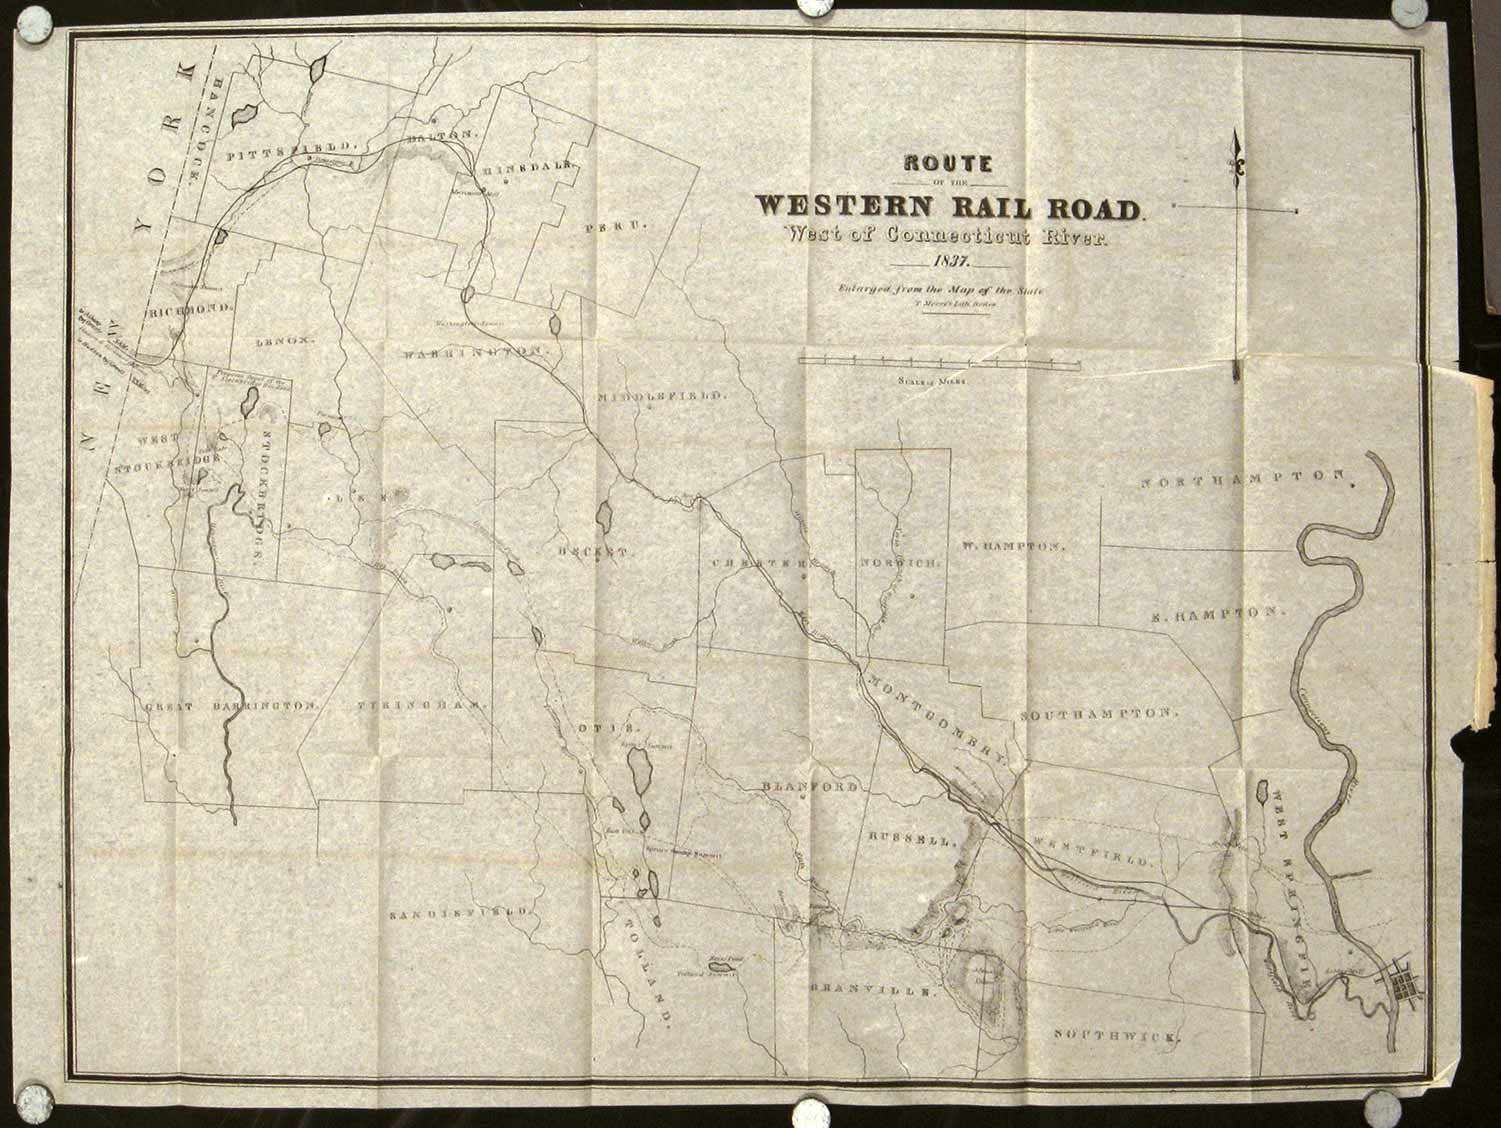 Route of the Western Railroad. West of the Connecticut River. 1837. Enlarged from the Map of the State. WESTERN RAILROAD / CONNECTICUT)